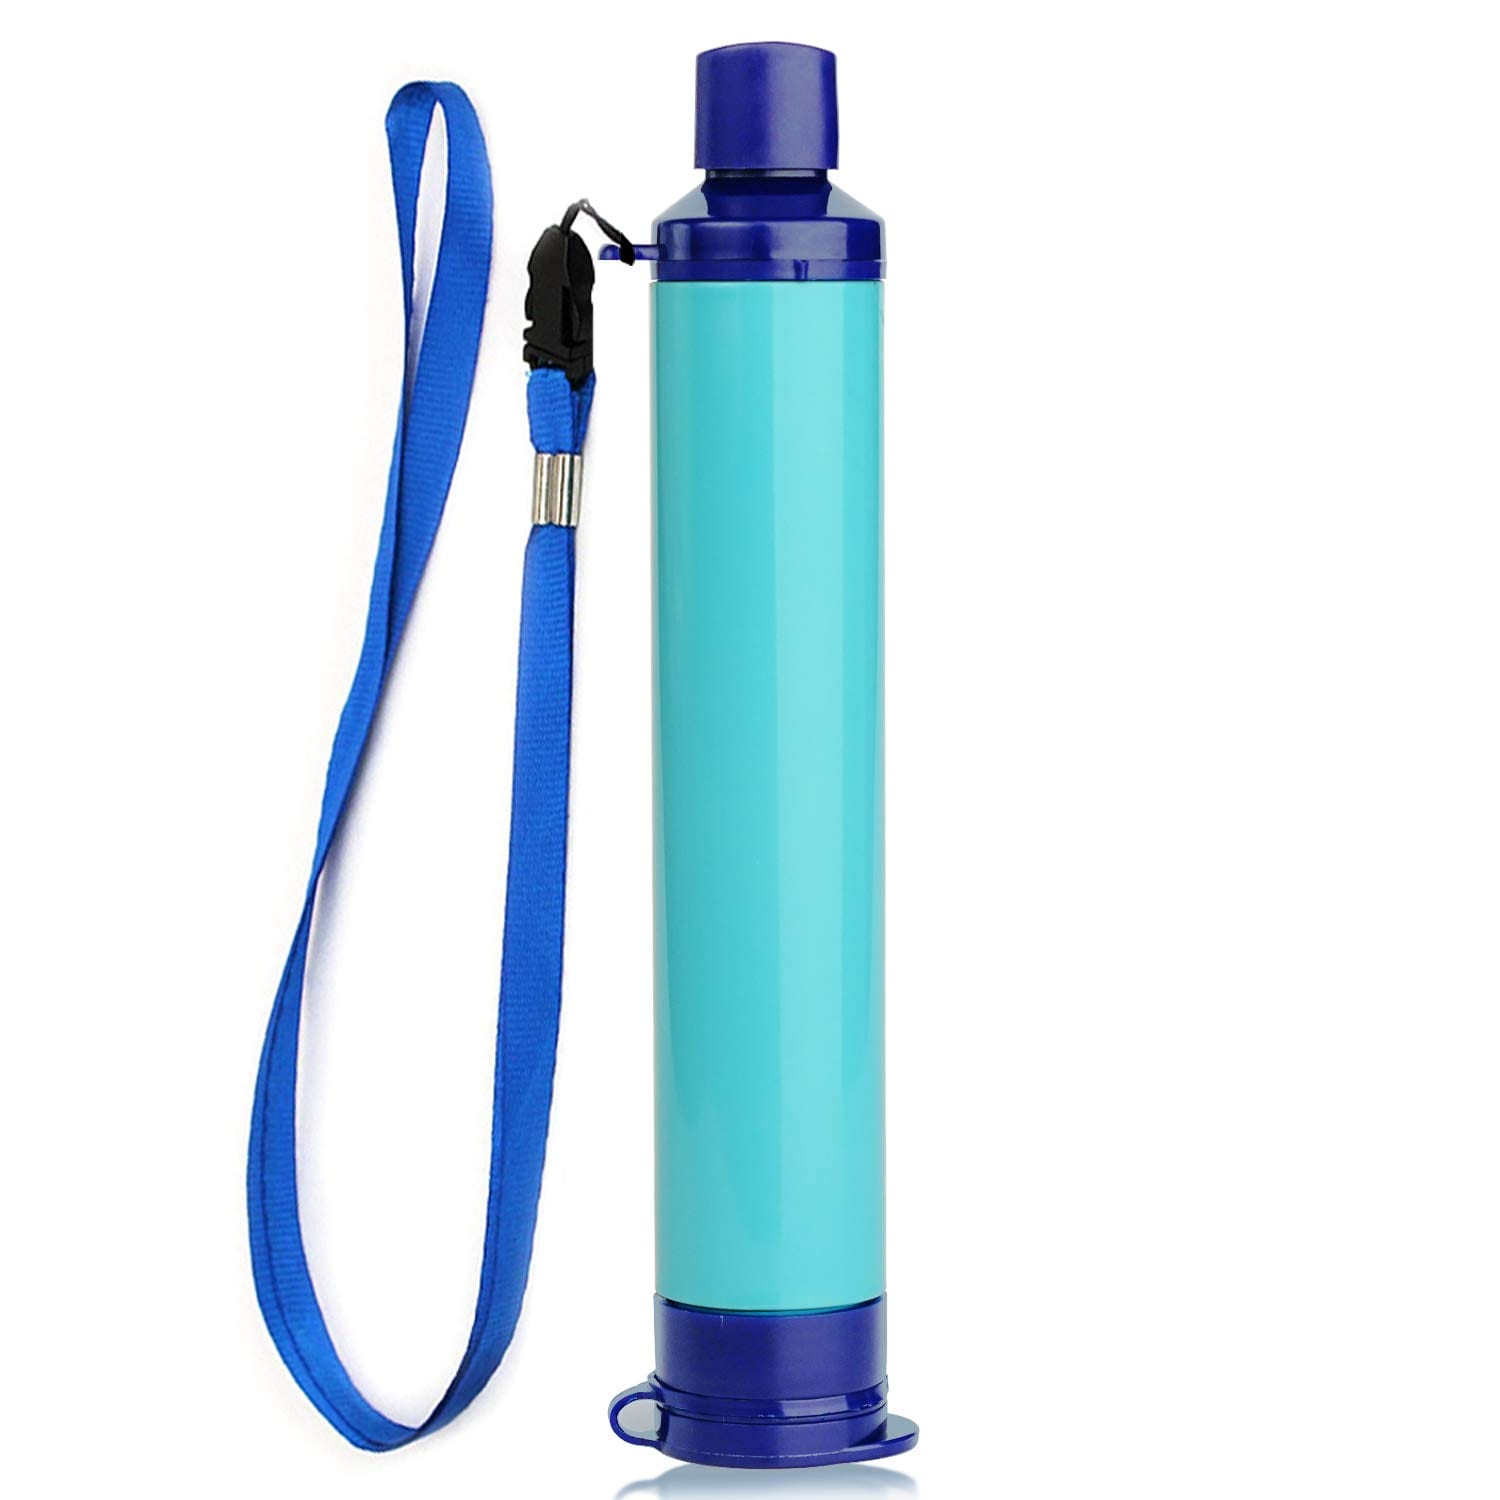 Lifestraw Portable Personal Water Purification Filter Survival Straws 10 Pack